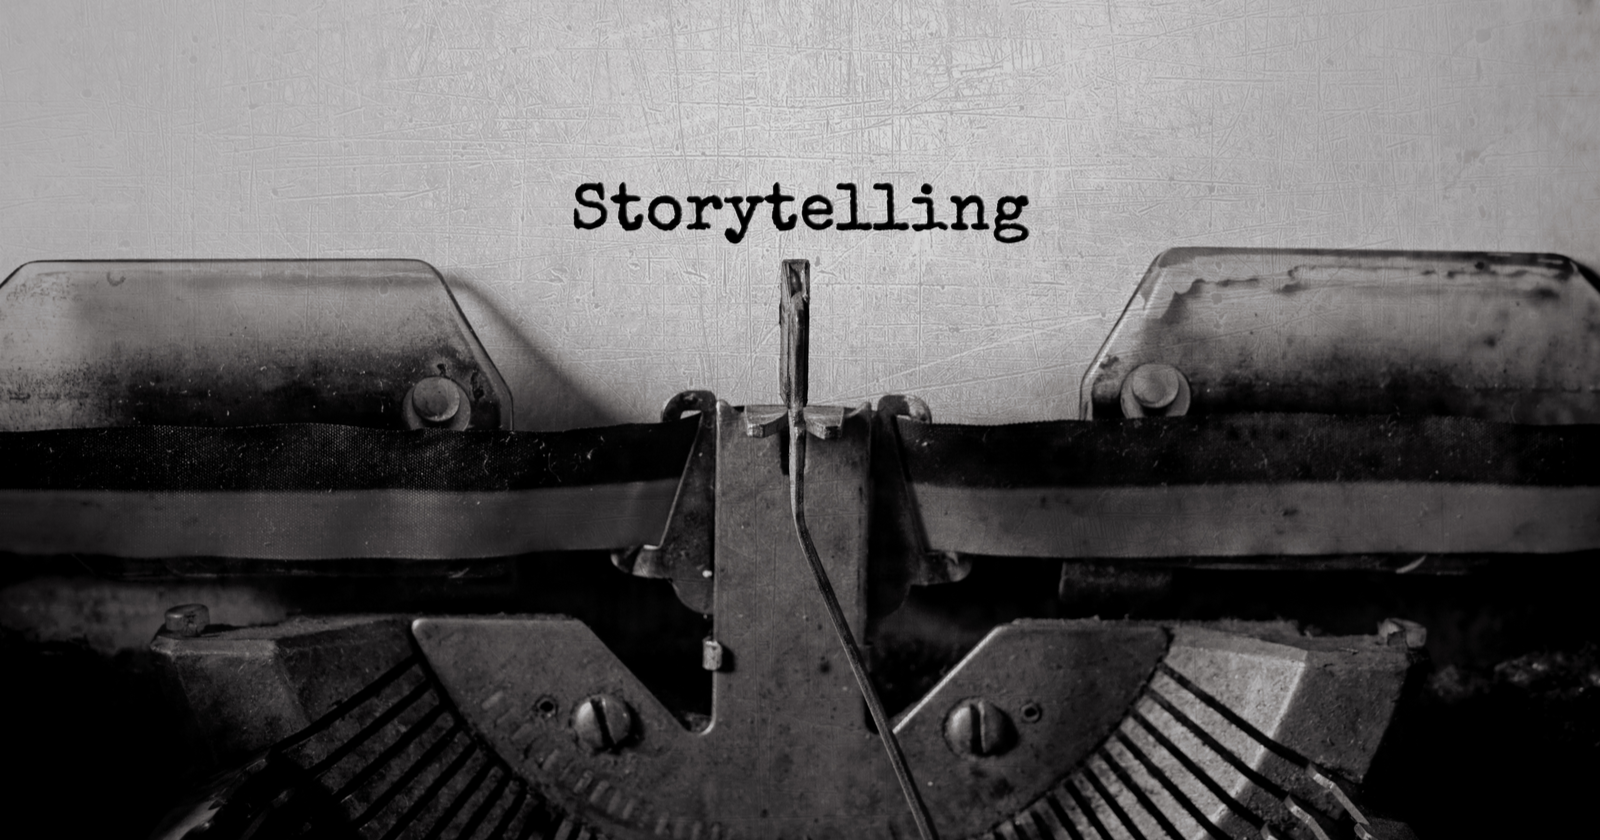 storytelling in a covid-19 world